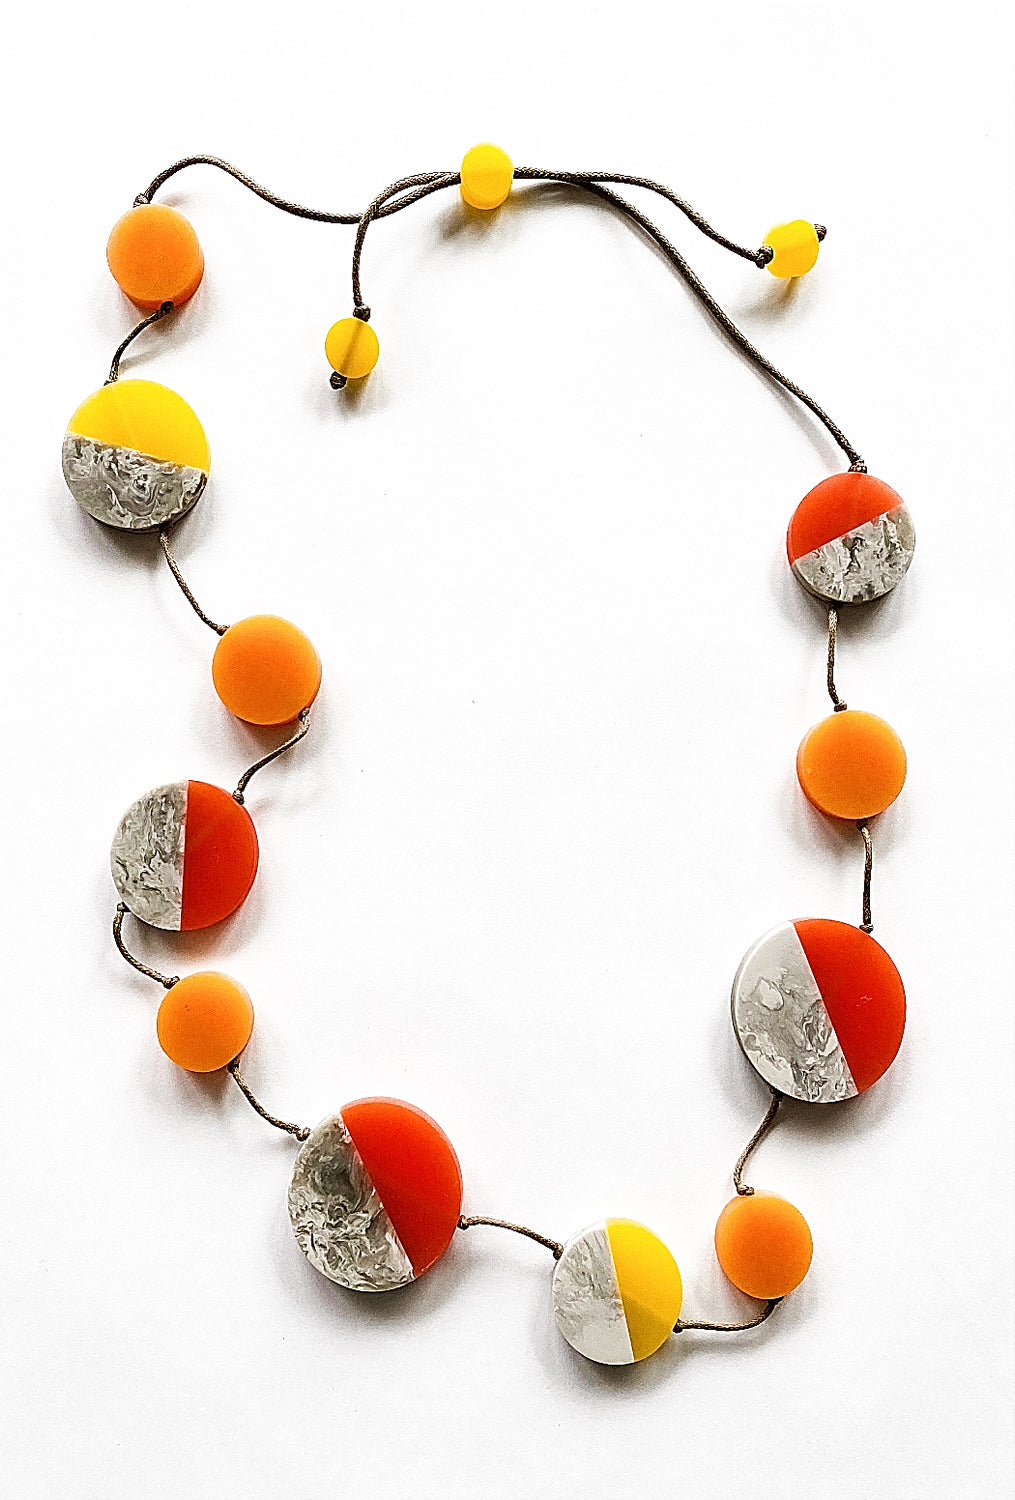 Sylca Designs Athena Necklace, Fire